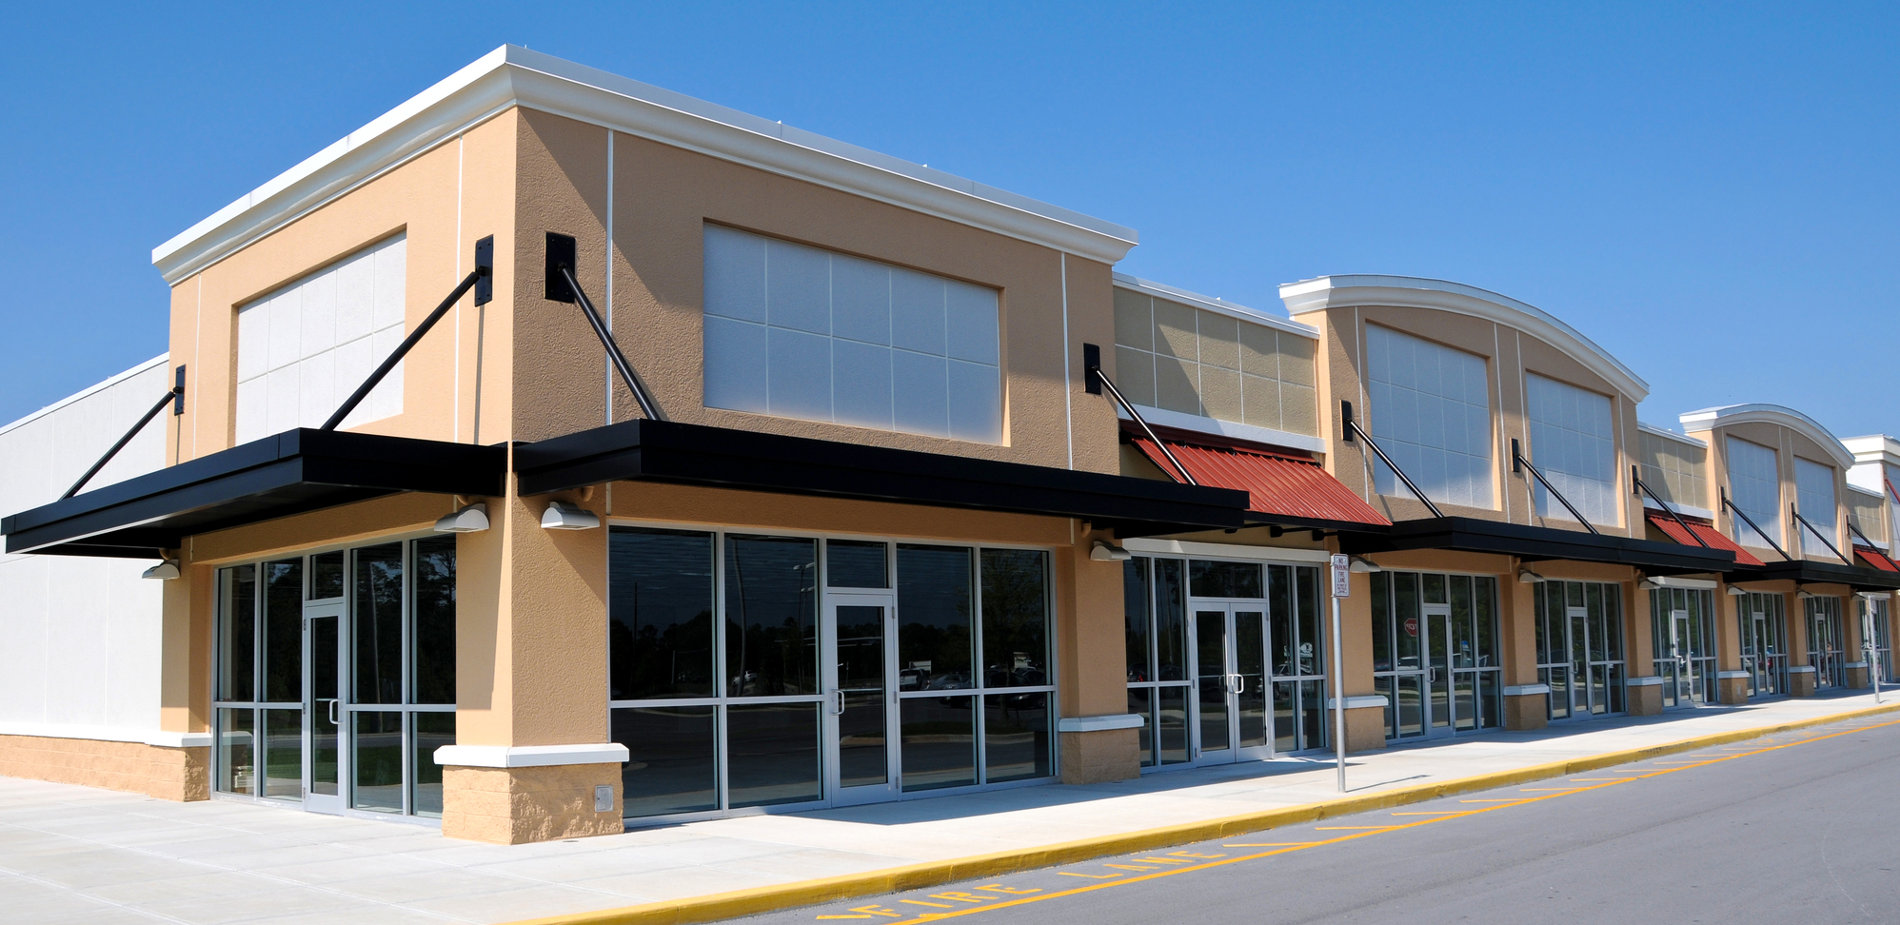 Facade Architecture Commercial Store Fronts